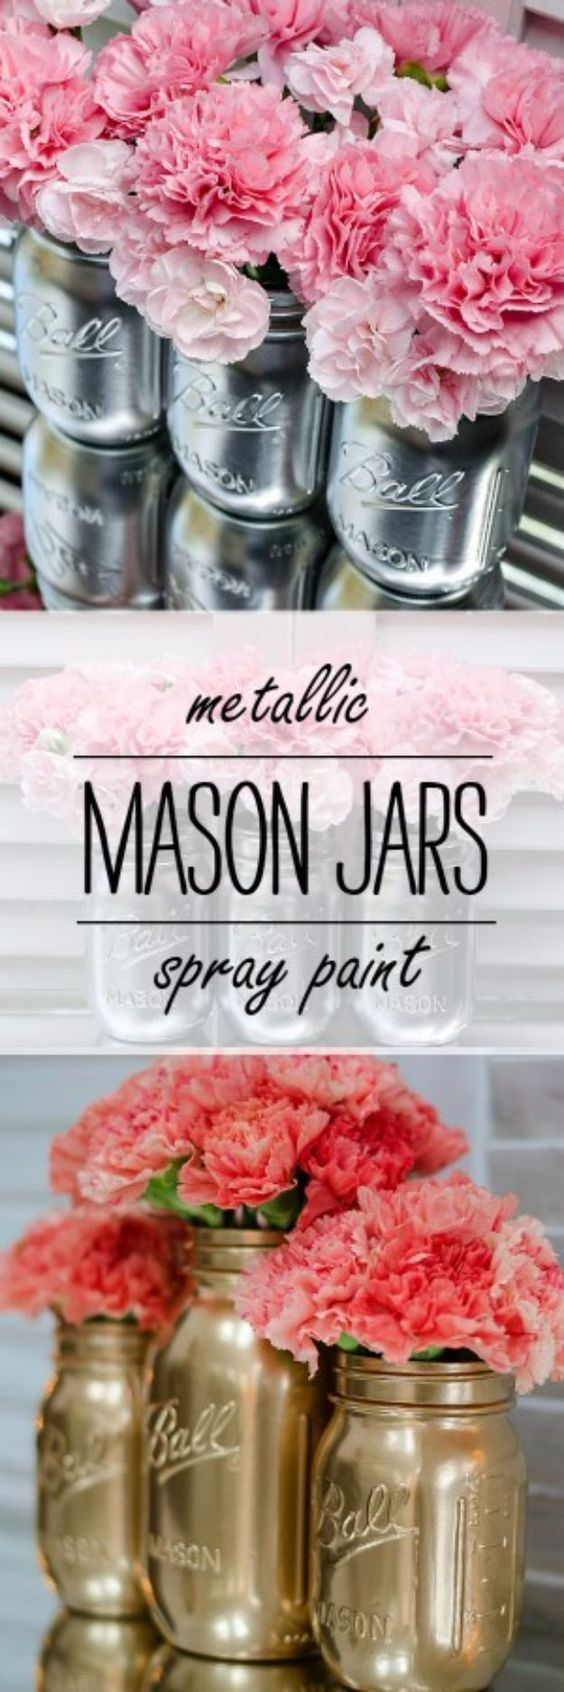 awesome 50 Cute DIY Mason Jar Crafts - DIY Projects for Teens by http://www.best99-home-decor-pics.club/homemade-home-decor/50-cute-diy-mason-jar-crafts-diy-projects-for-teens-10/